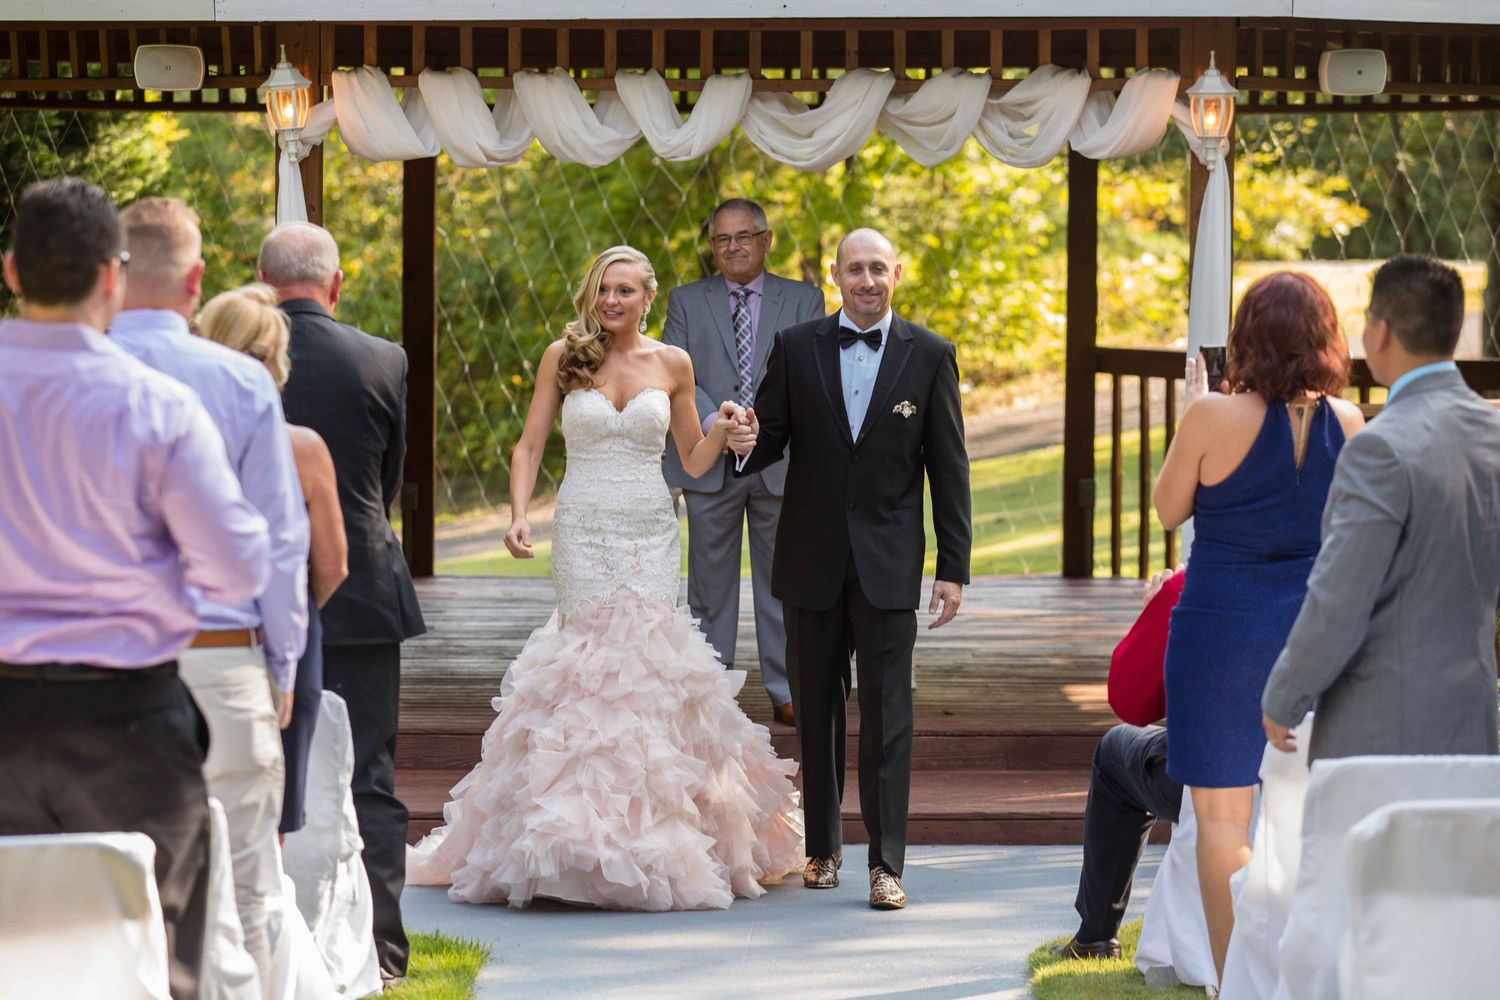 Newlyweds leaving their wedding with guests standing and applauding the just married couple.  Pink Wedding Dress